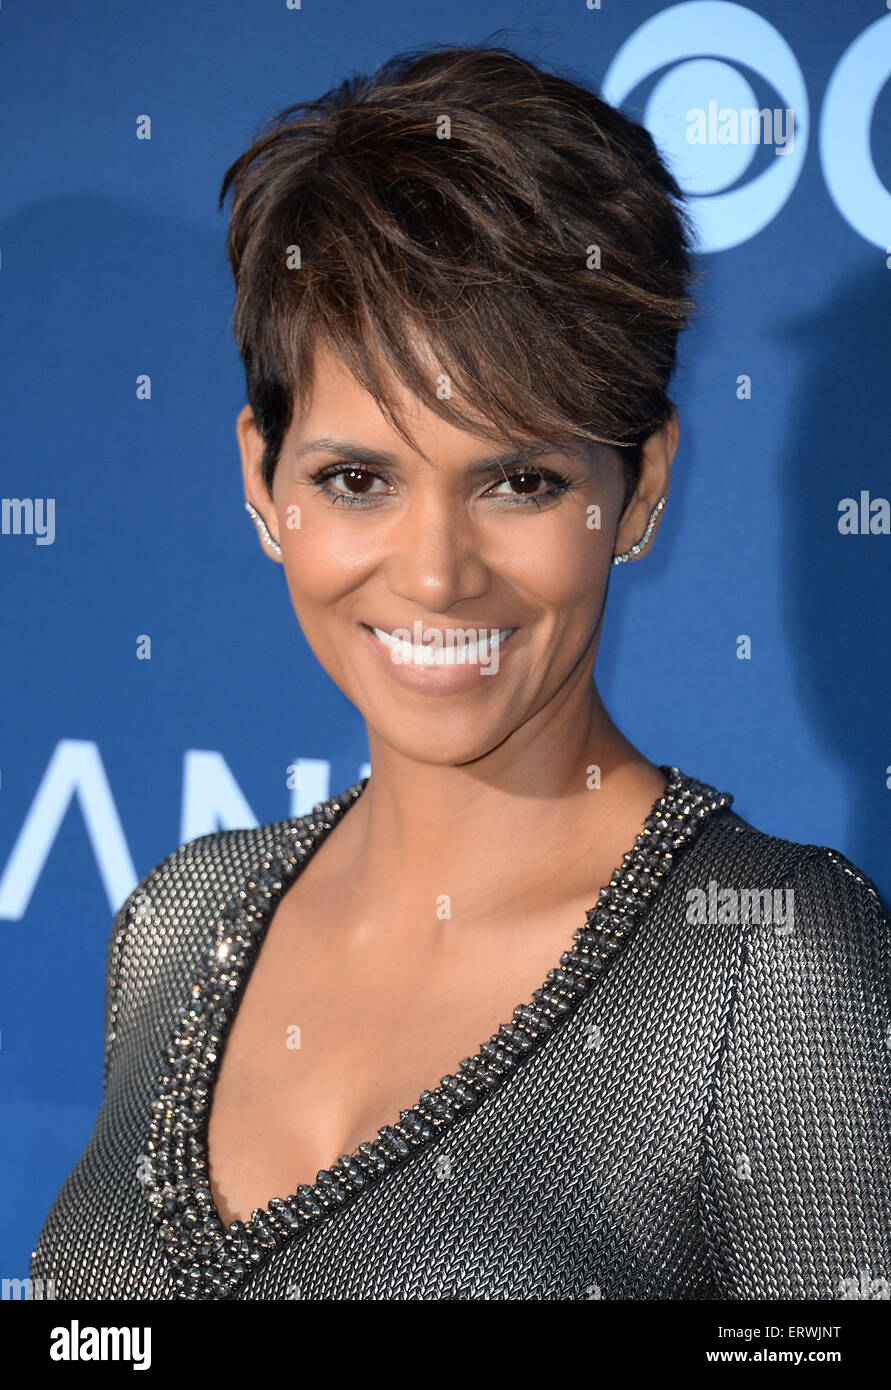 Halle Berry Nude Pics and Videos - - Top Nude]